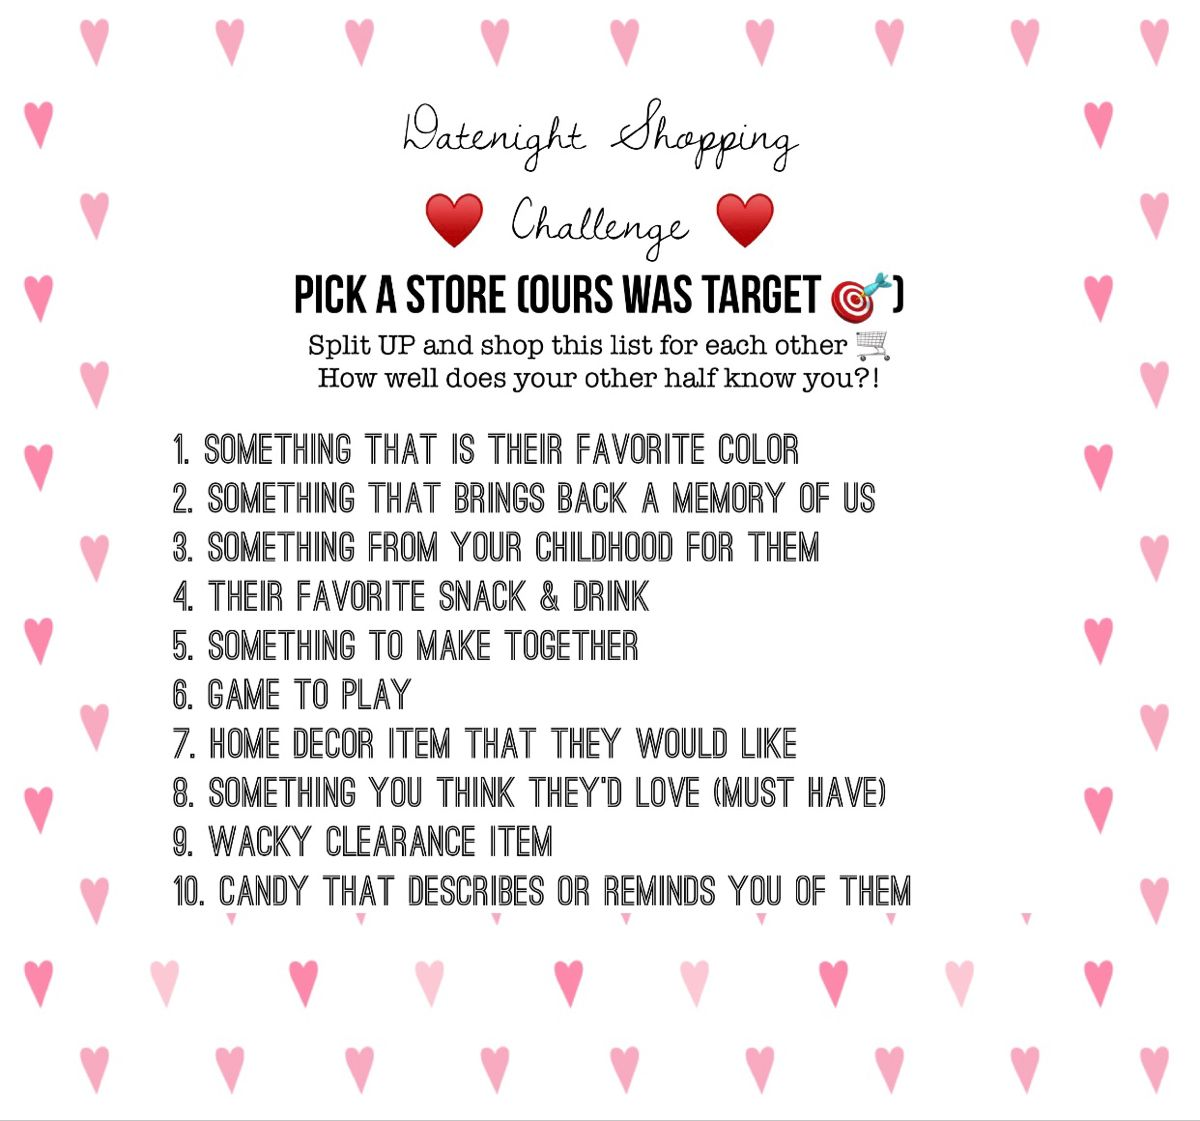 Datenight Shopping Challenge Date Night Gifts Christmas Gifts For Couples Cute Boyfriend Gifts